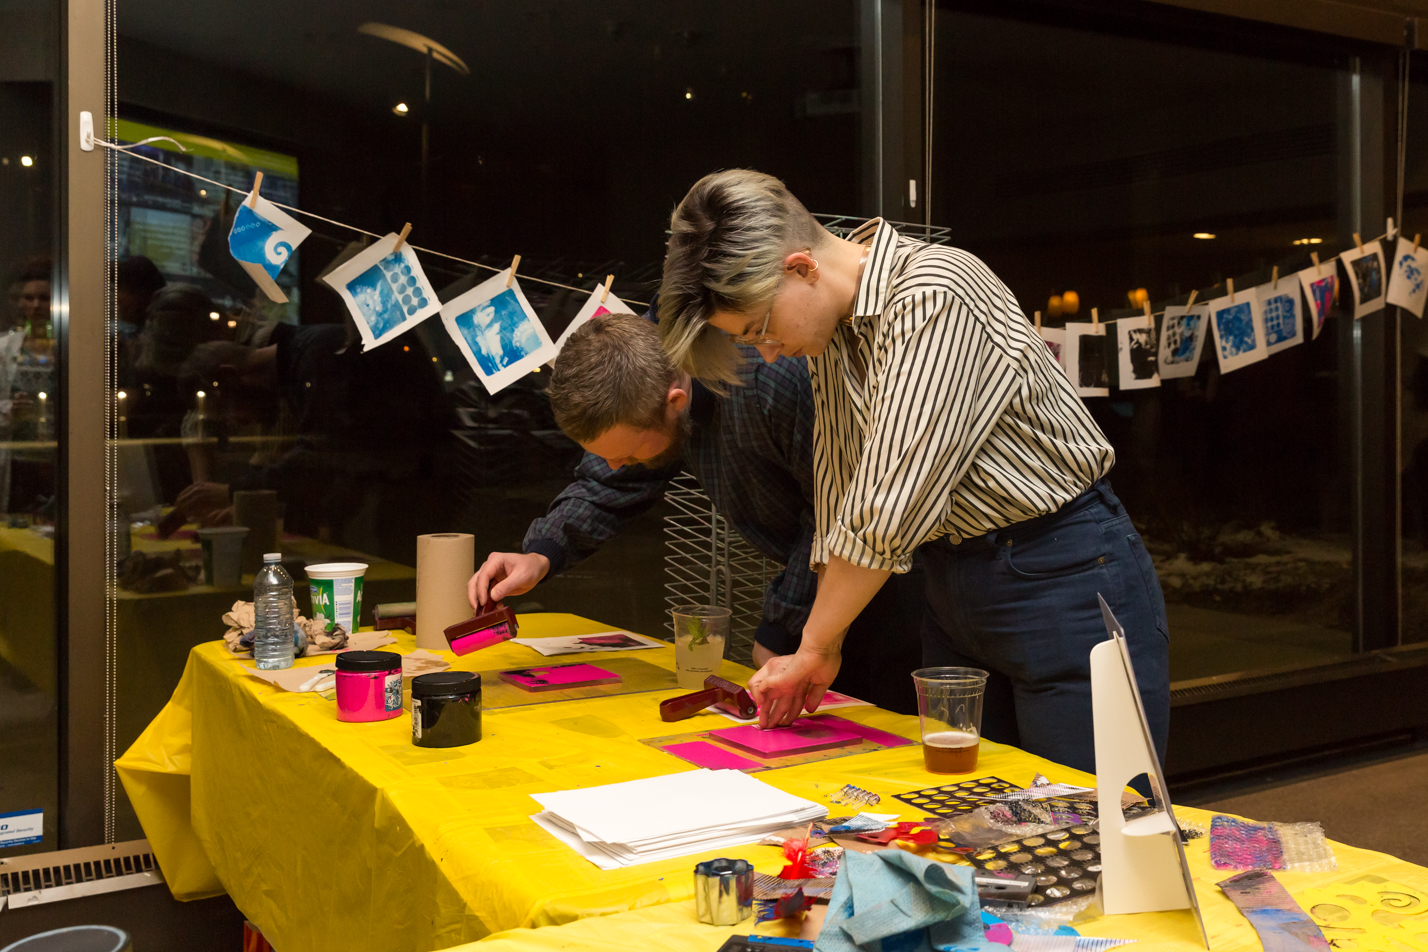 Two young people working on relief prints at a brightly-covered work table covered in printmaking supplies, alongside two cups of beer. A string of finished prints is hanging across a dark reflective window in the background